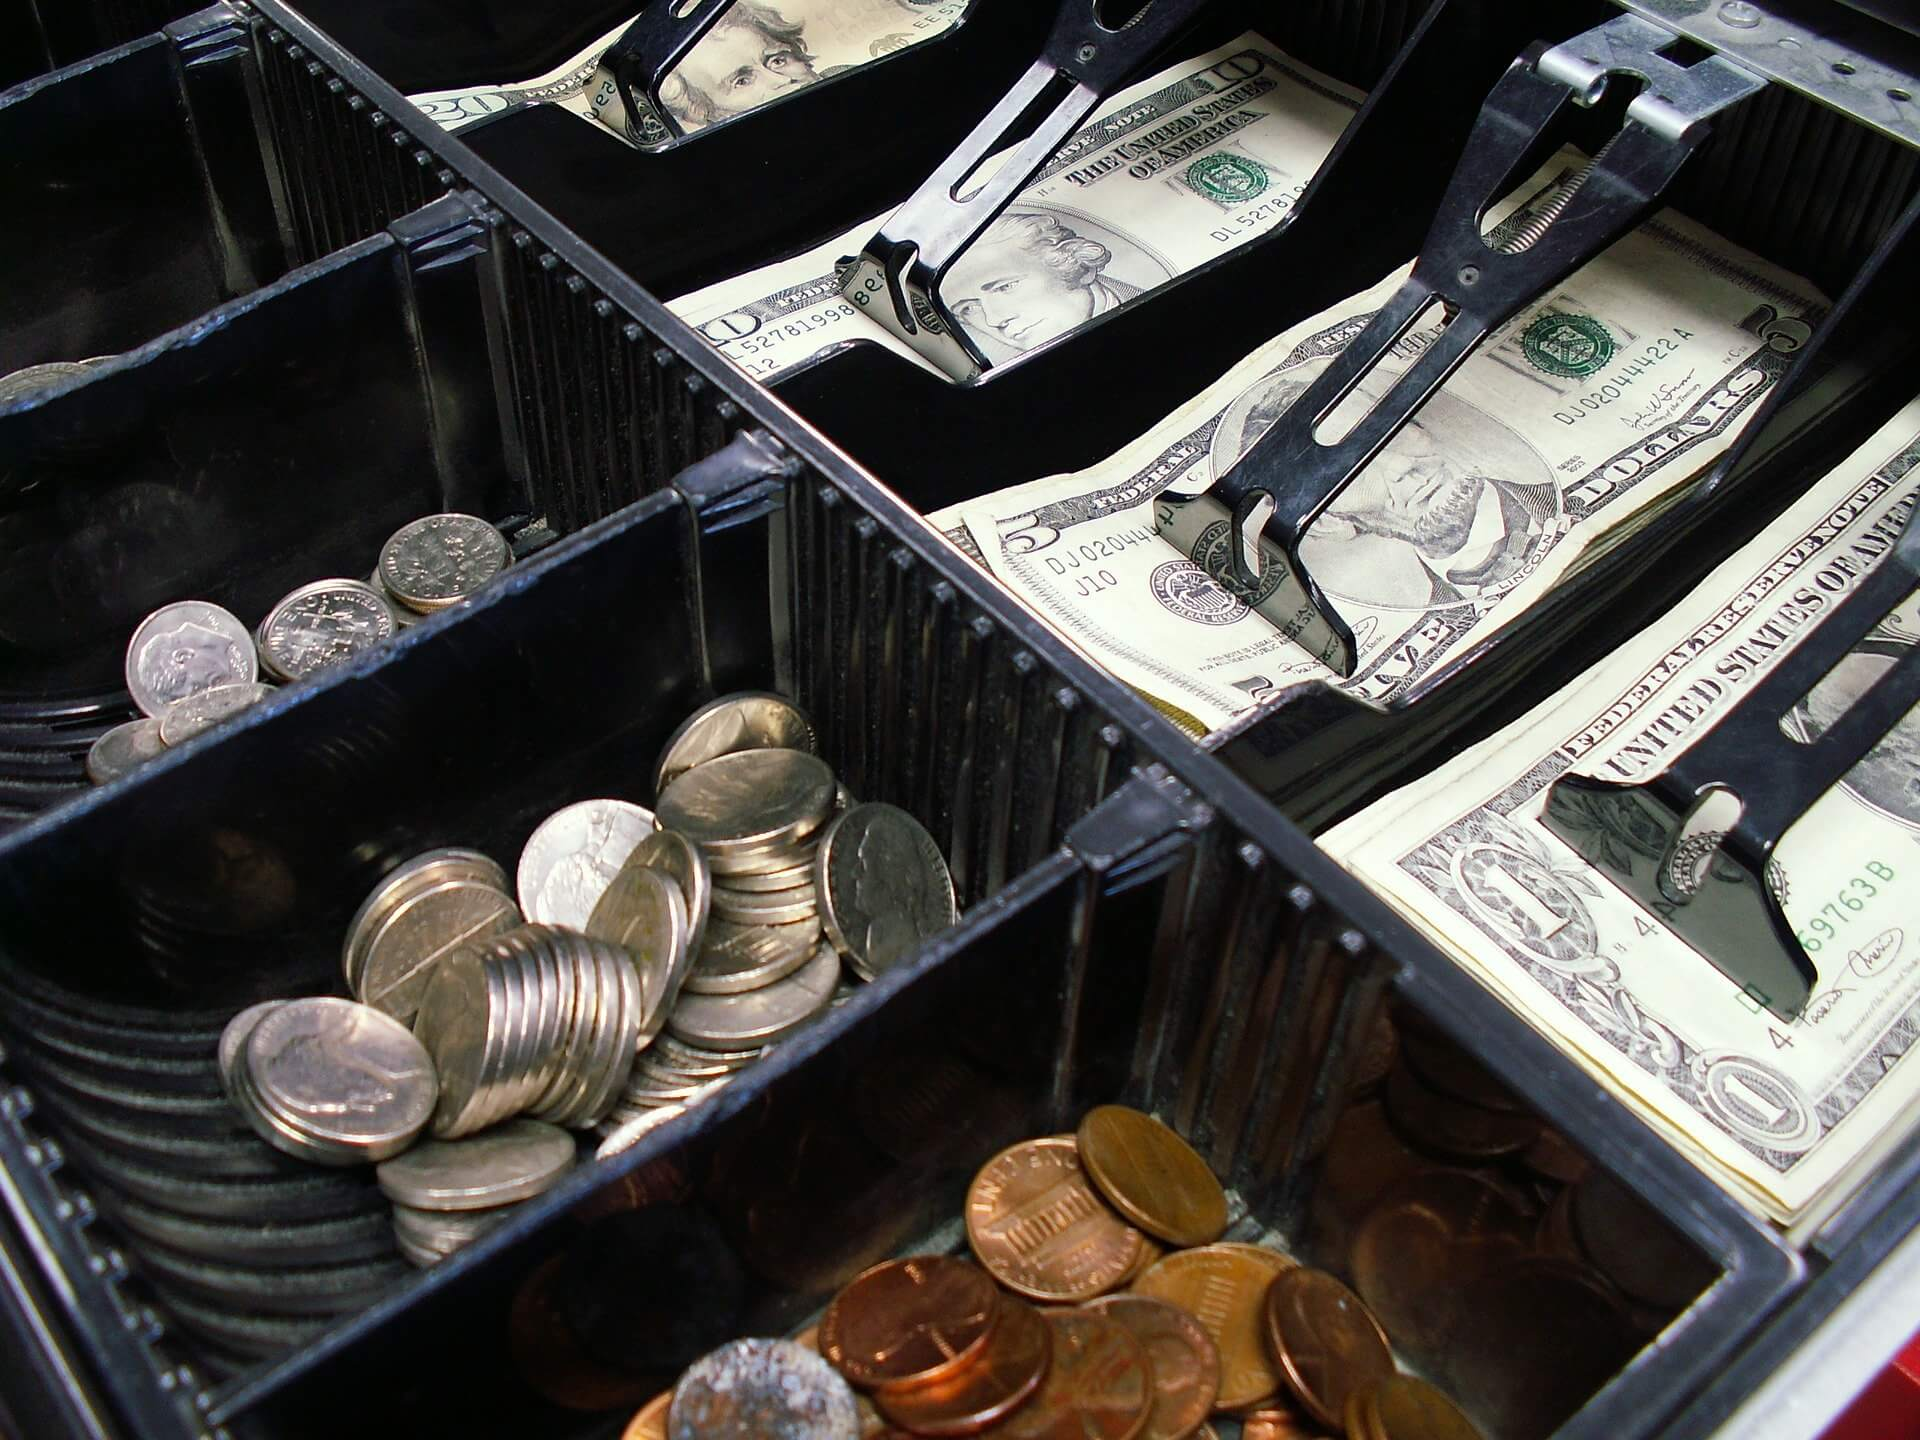 cash register drawer with money